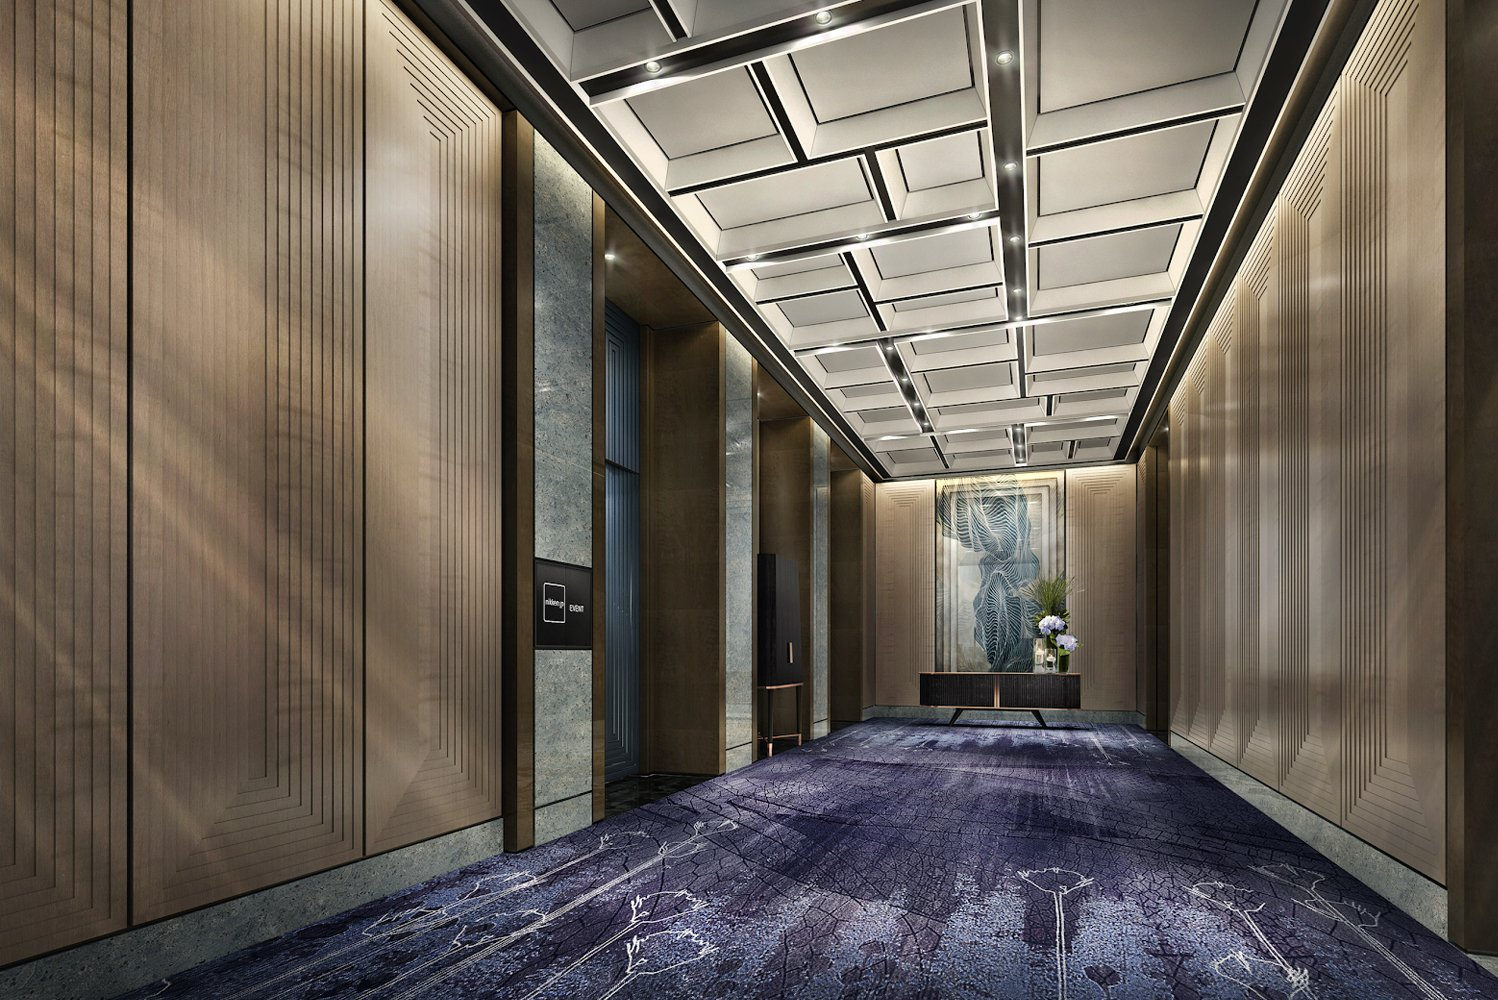 Scheduled to open on April 27, 2020, the mesm Tokyo, Autograph Collection will have over 21,000 square meters (226,042 square feet) of interiors.